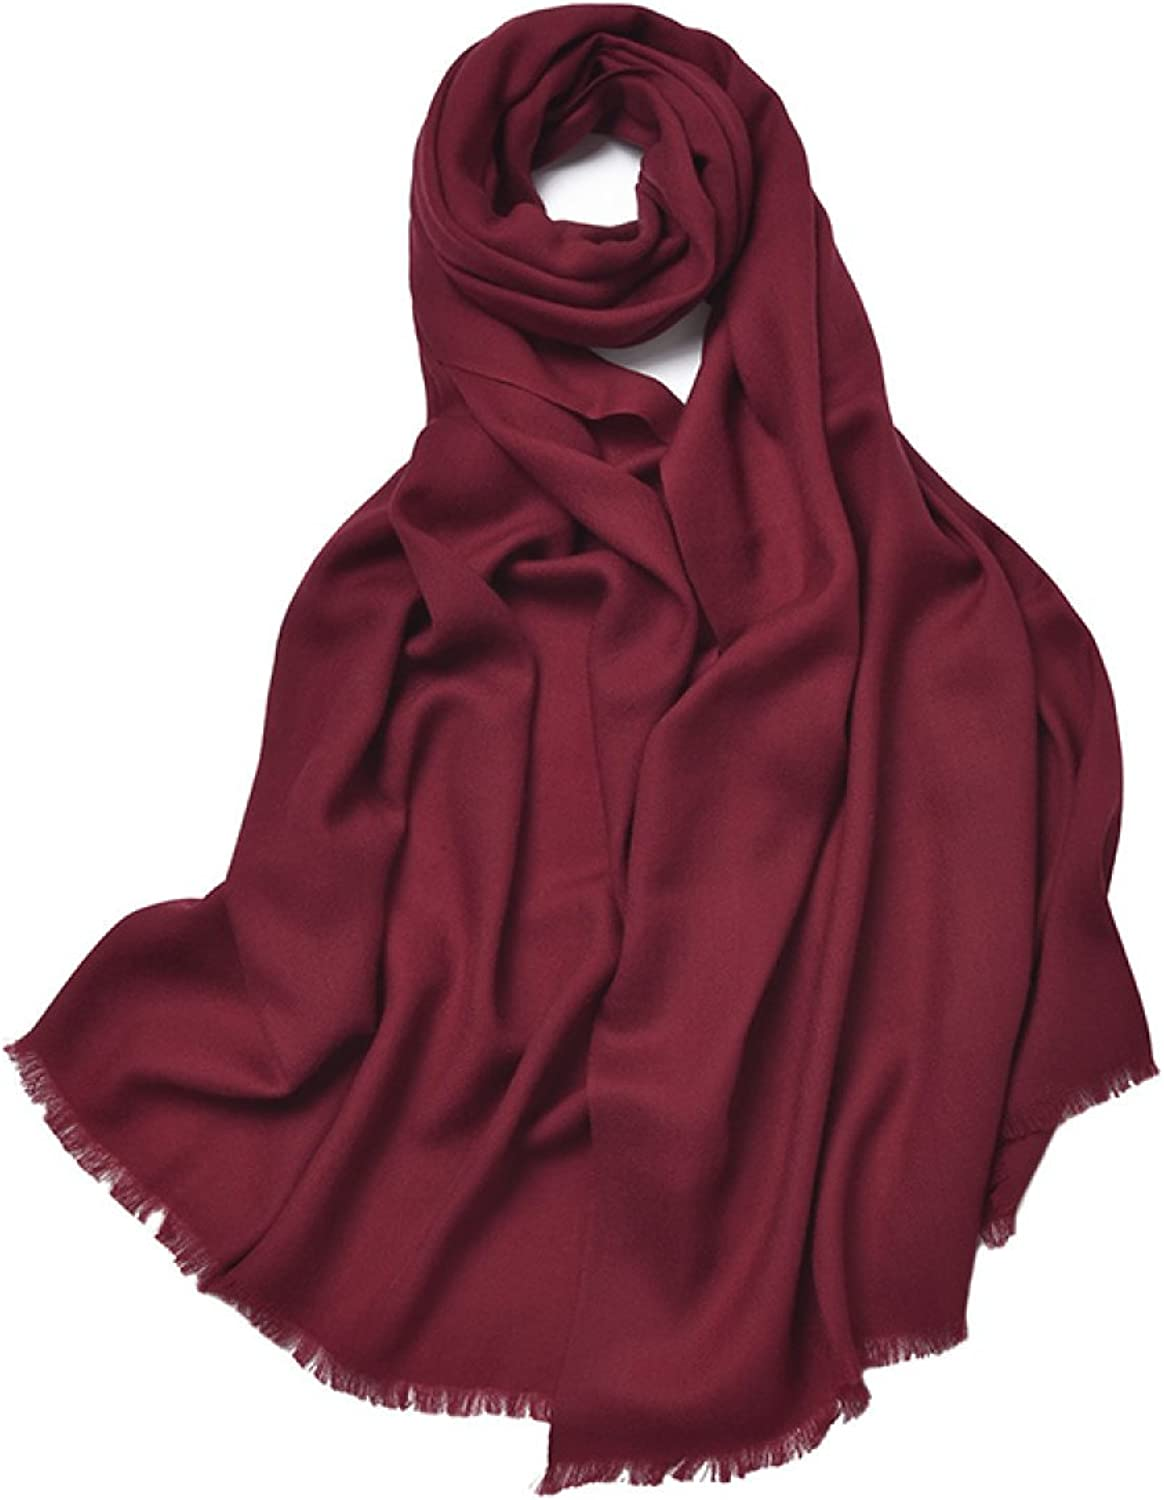 2017 Women's Autumn And Winter Long Solid color Scarf Shawl Dual The New,10OneSize